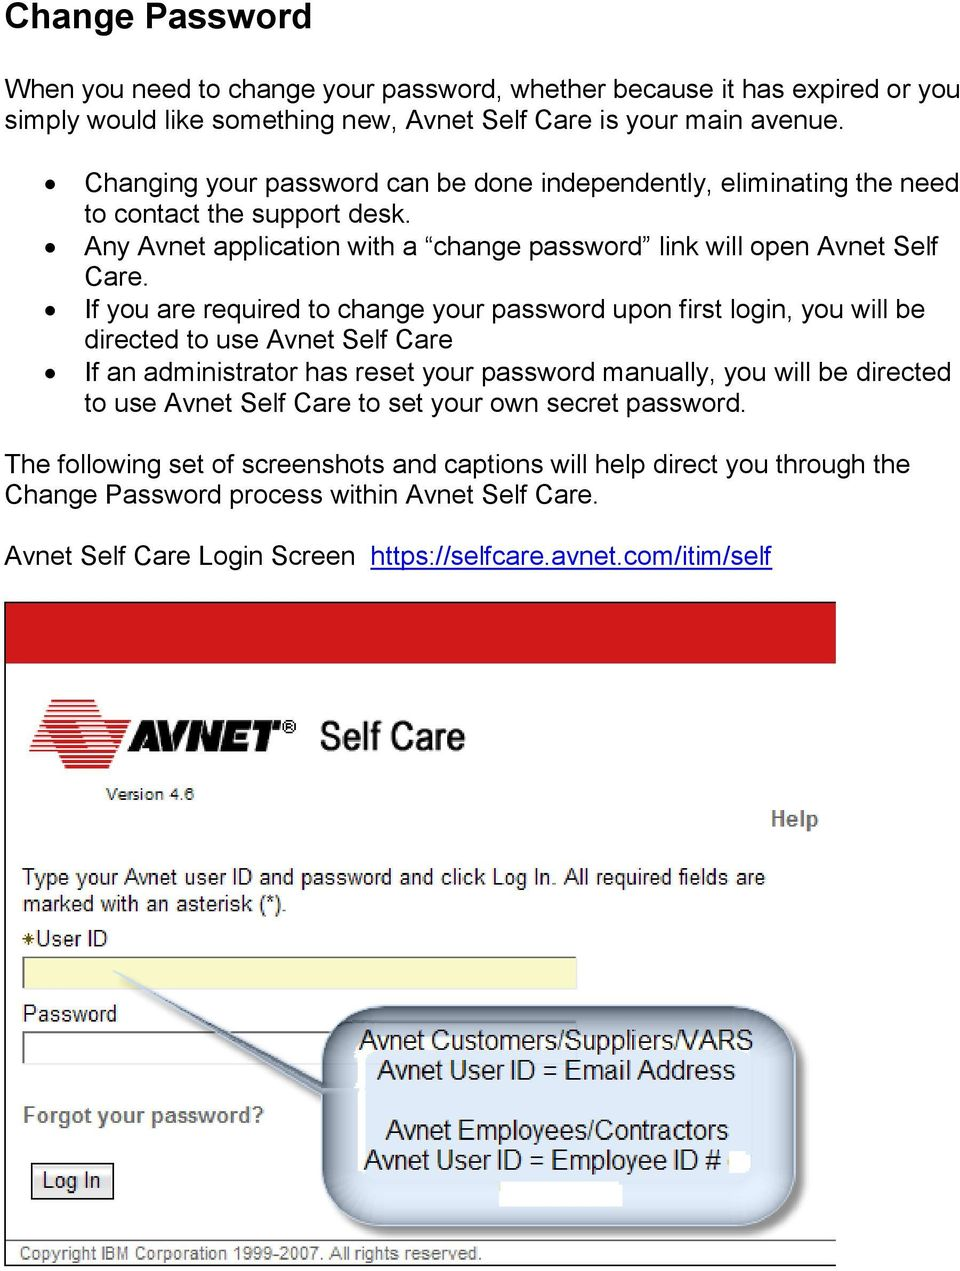 If you are required to change your password upon first login, you will be directed to use Avnet Self Care If an administrator has reset your password manually, you will be directed to use